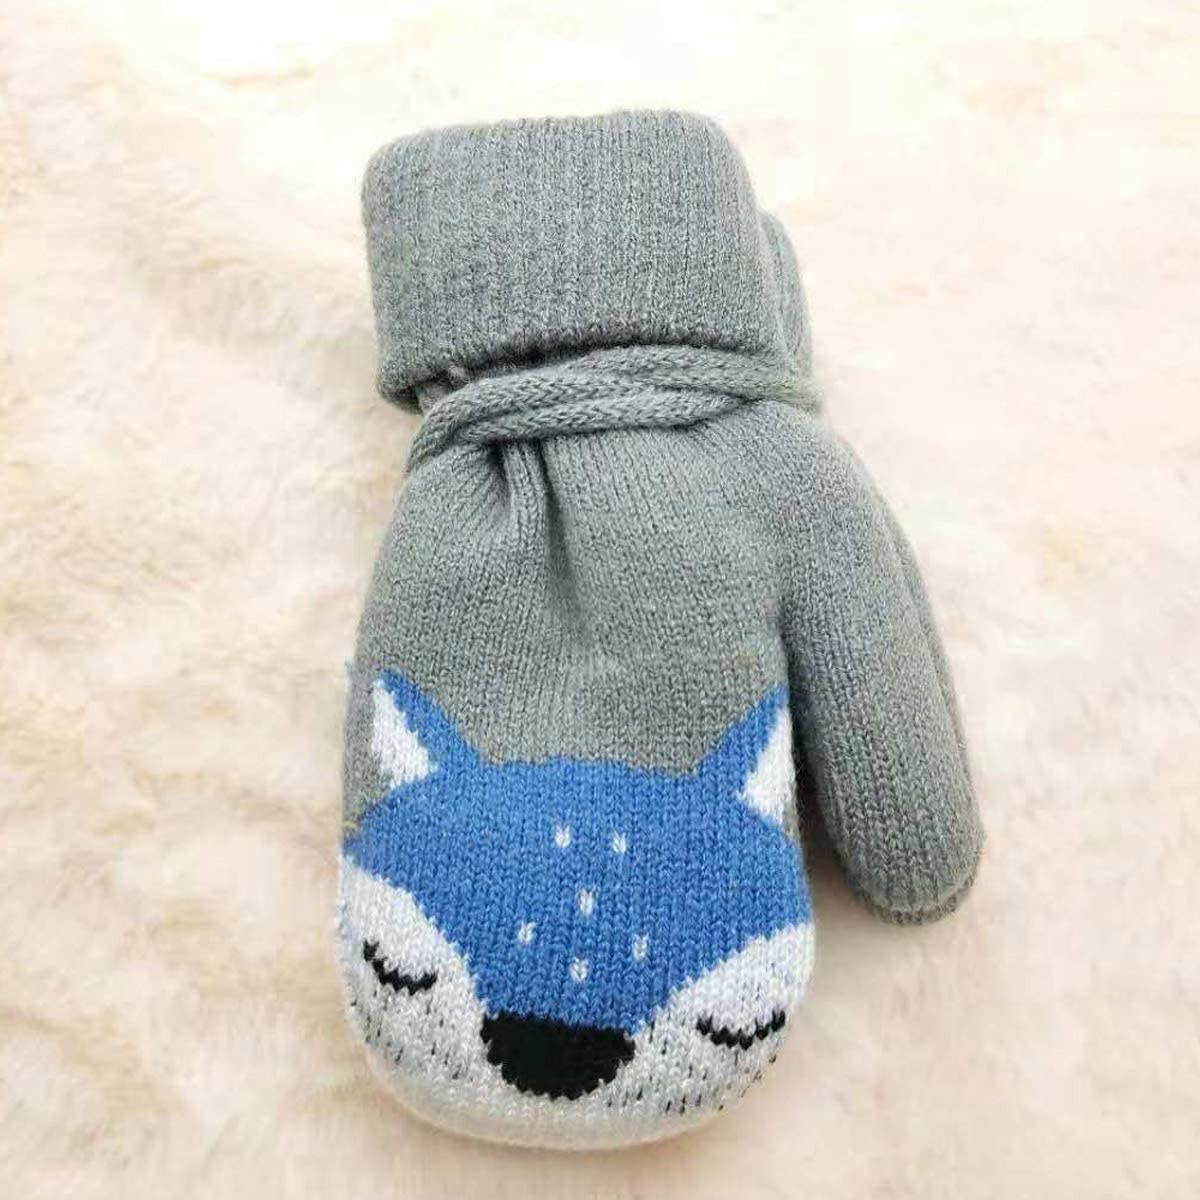 Vohoney Kids Knitted Mittens Children Winter Warm Gloves Magic Stretch Toddler Full Fnger Mittens with Thick Feece Lining for Boys Girls